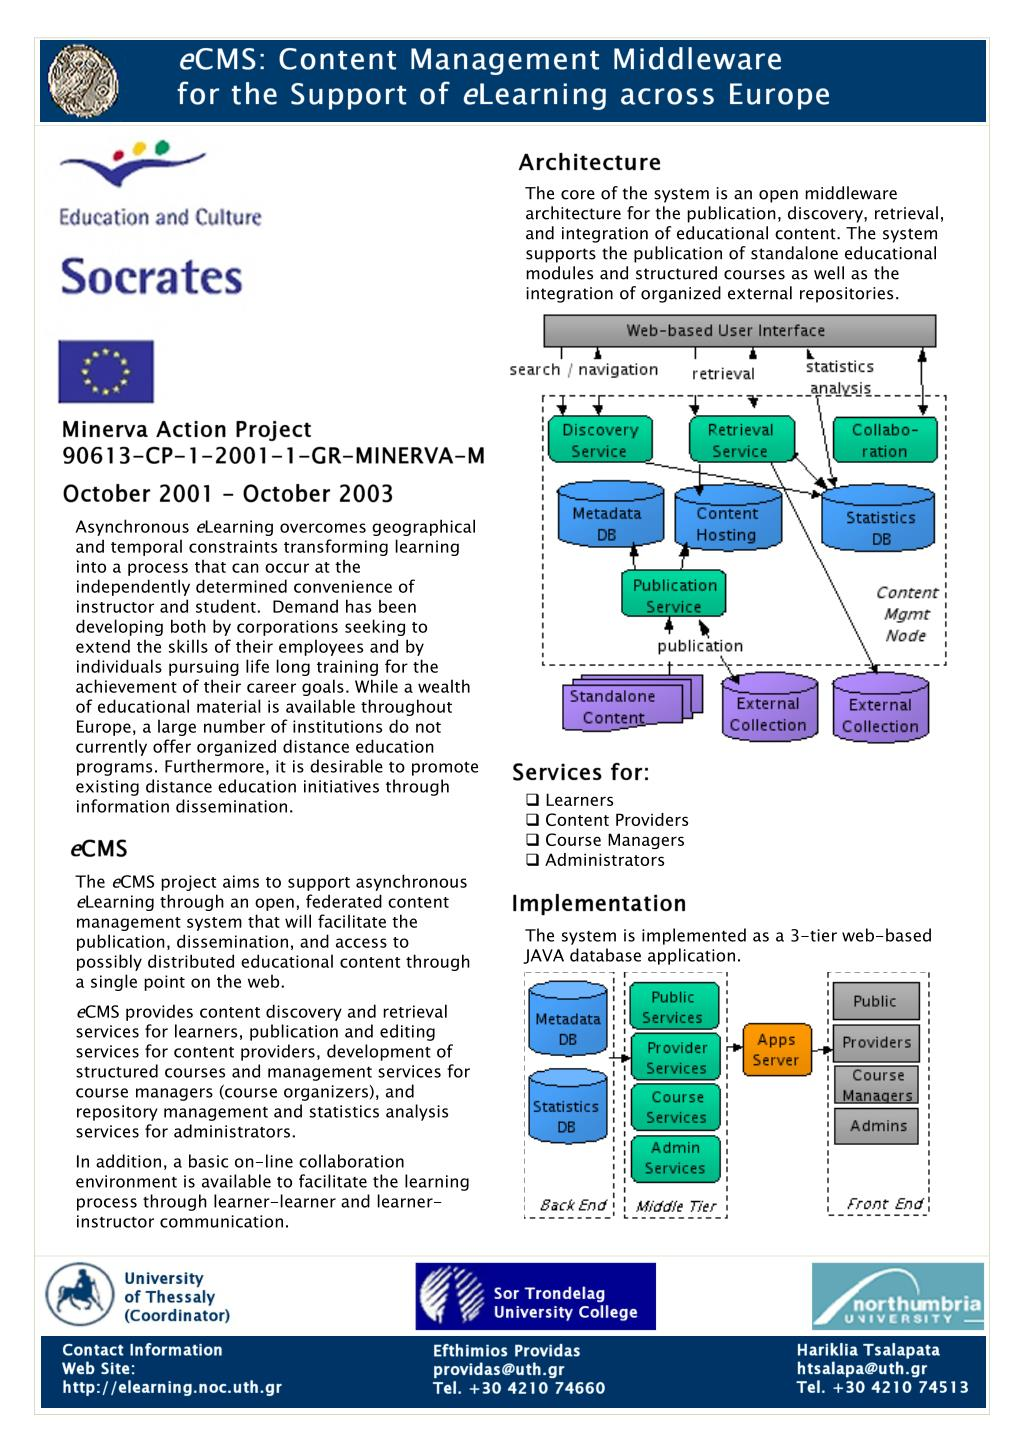 The core of the system is an open middleware architecture for the publication, discovery, retrieval, and integration of educational